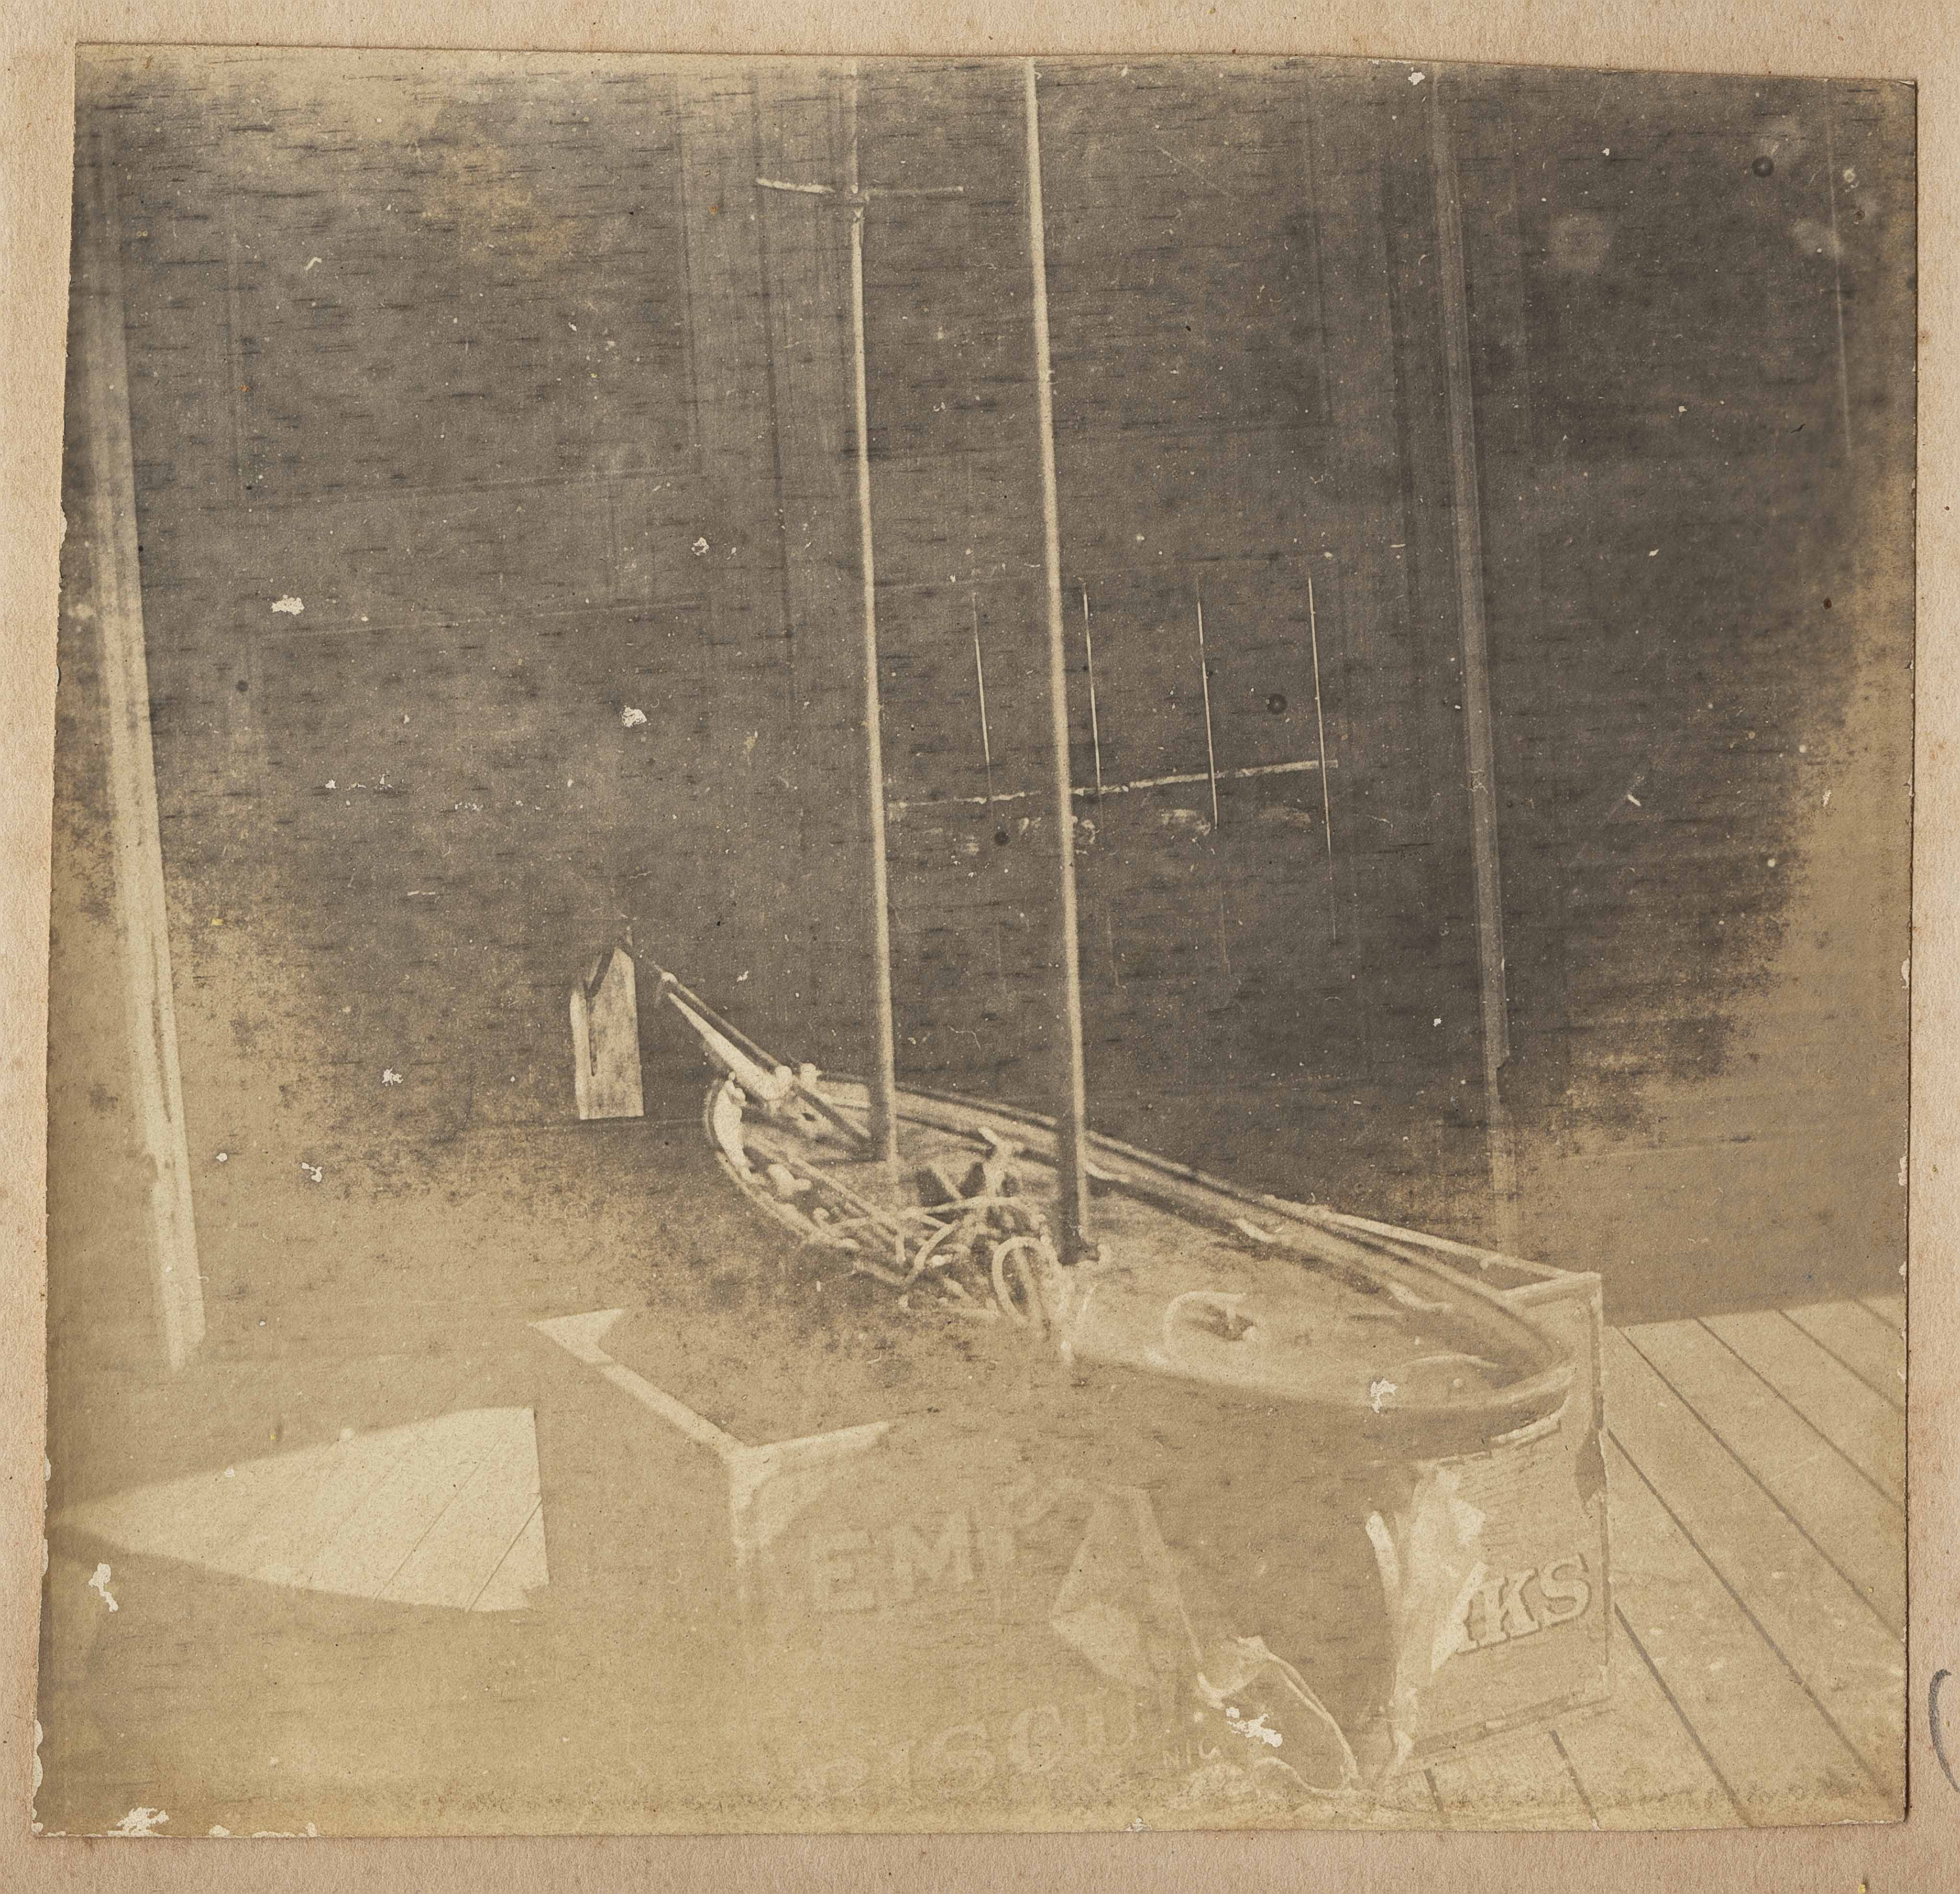 Two-masted model boat on dock